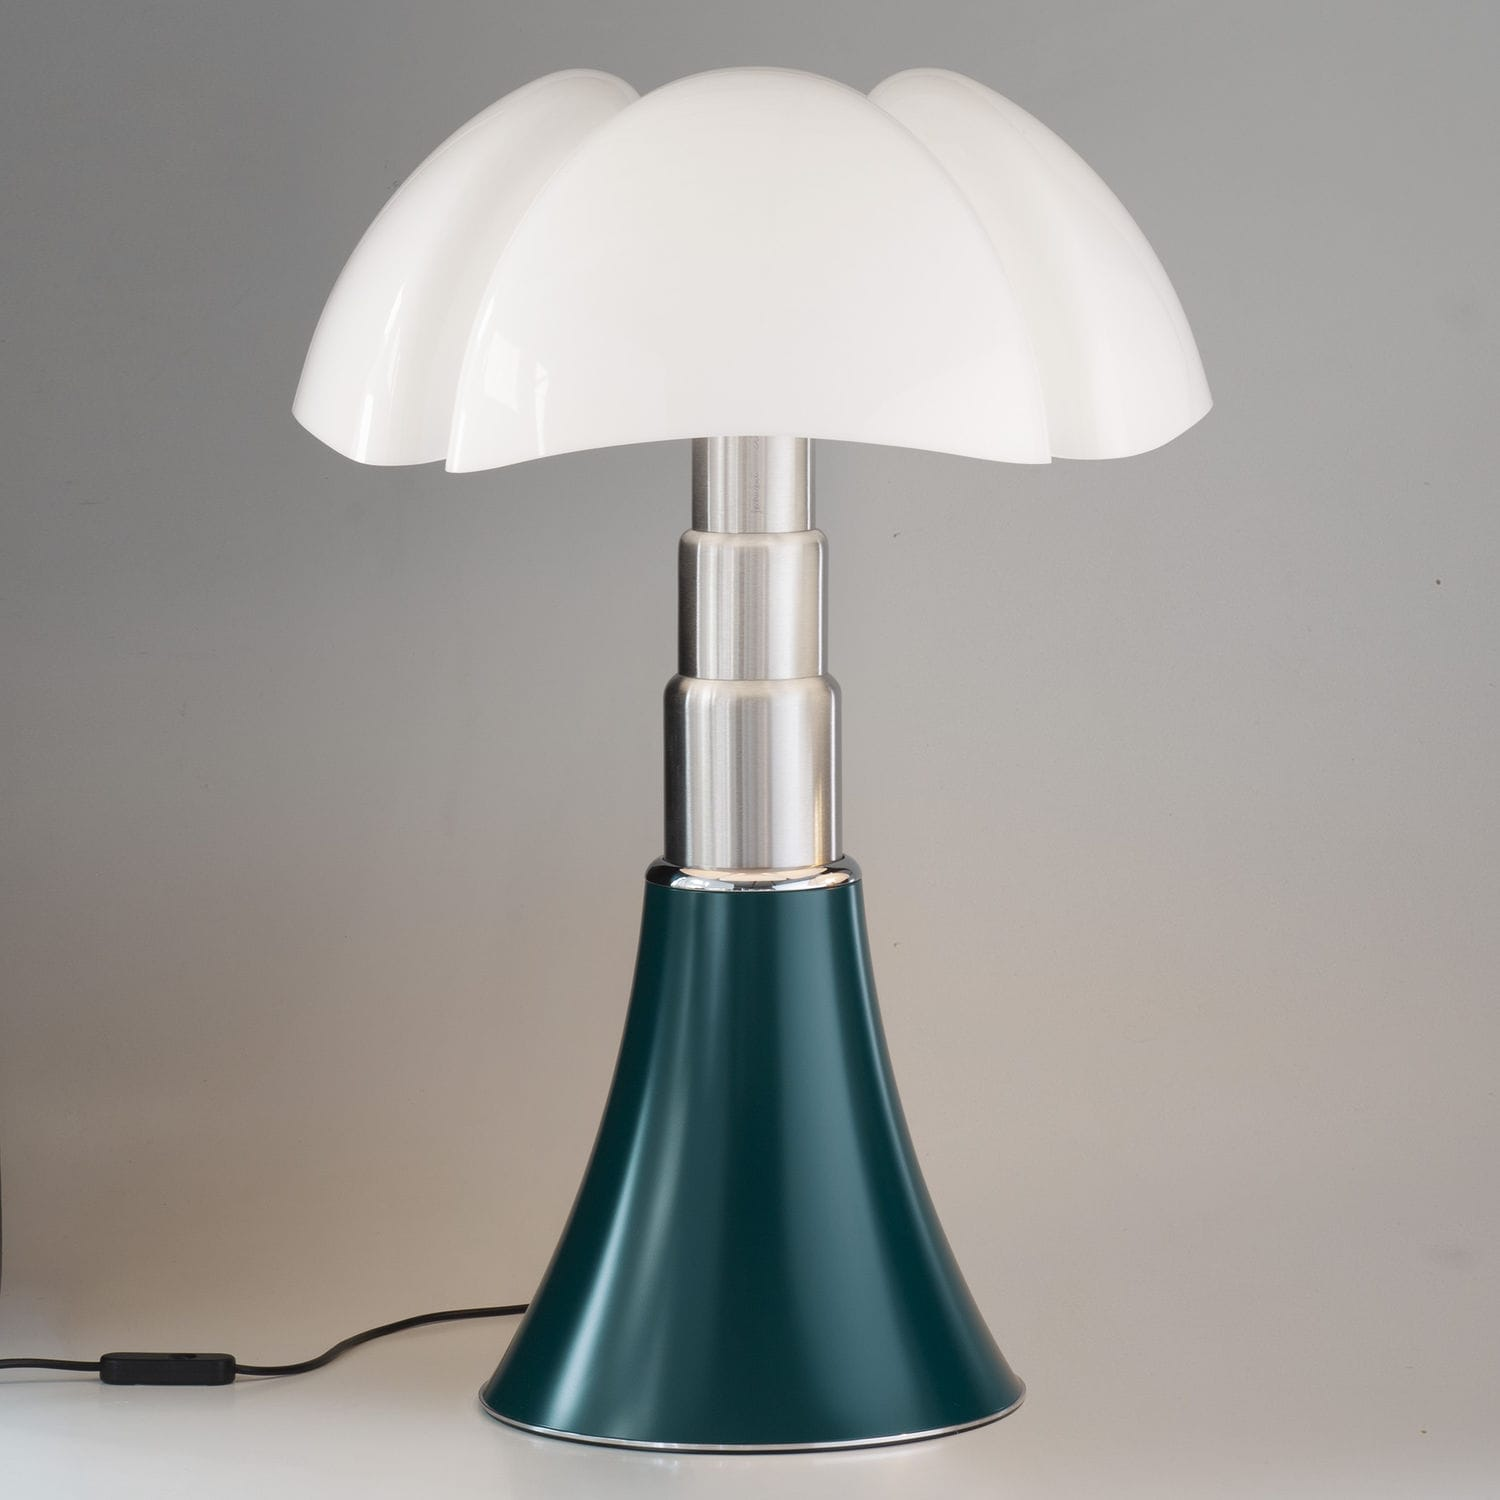 Lampe Pipistrella Table Lamp Contemporary Stainless Steel Lacquered Aluminum